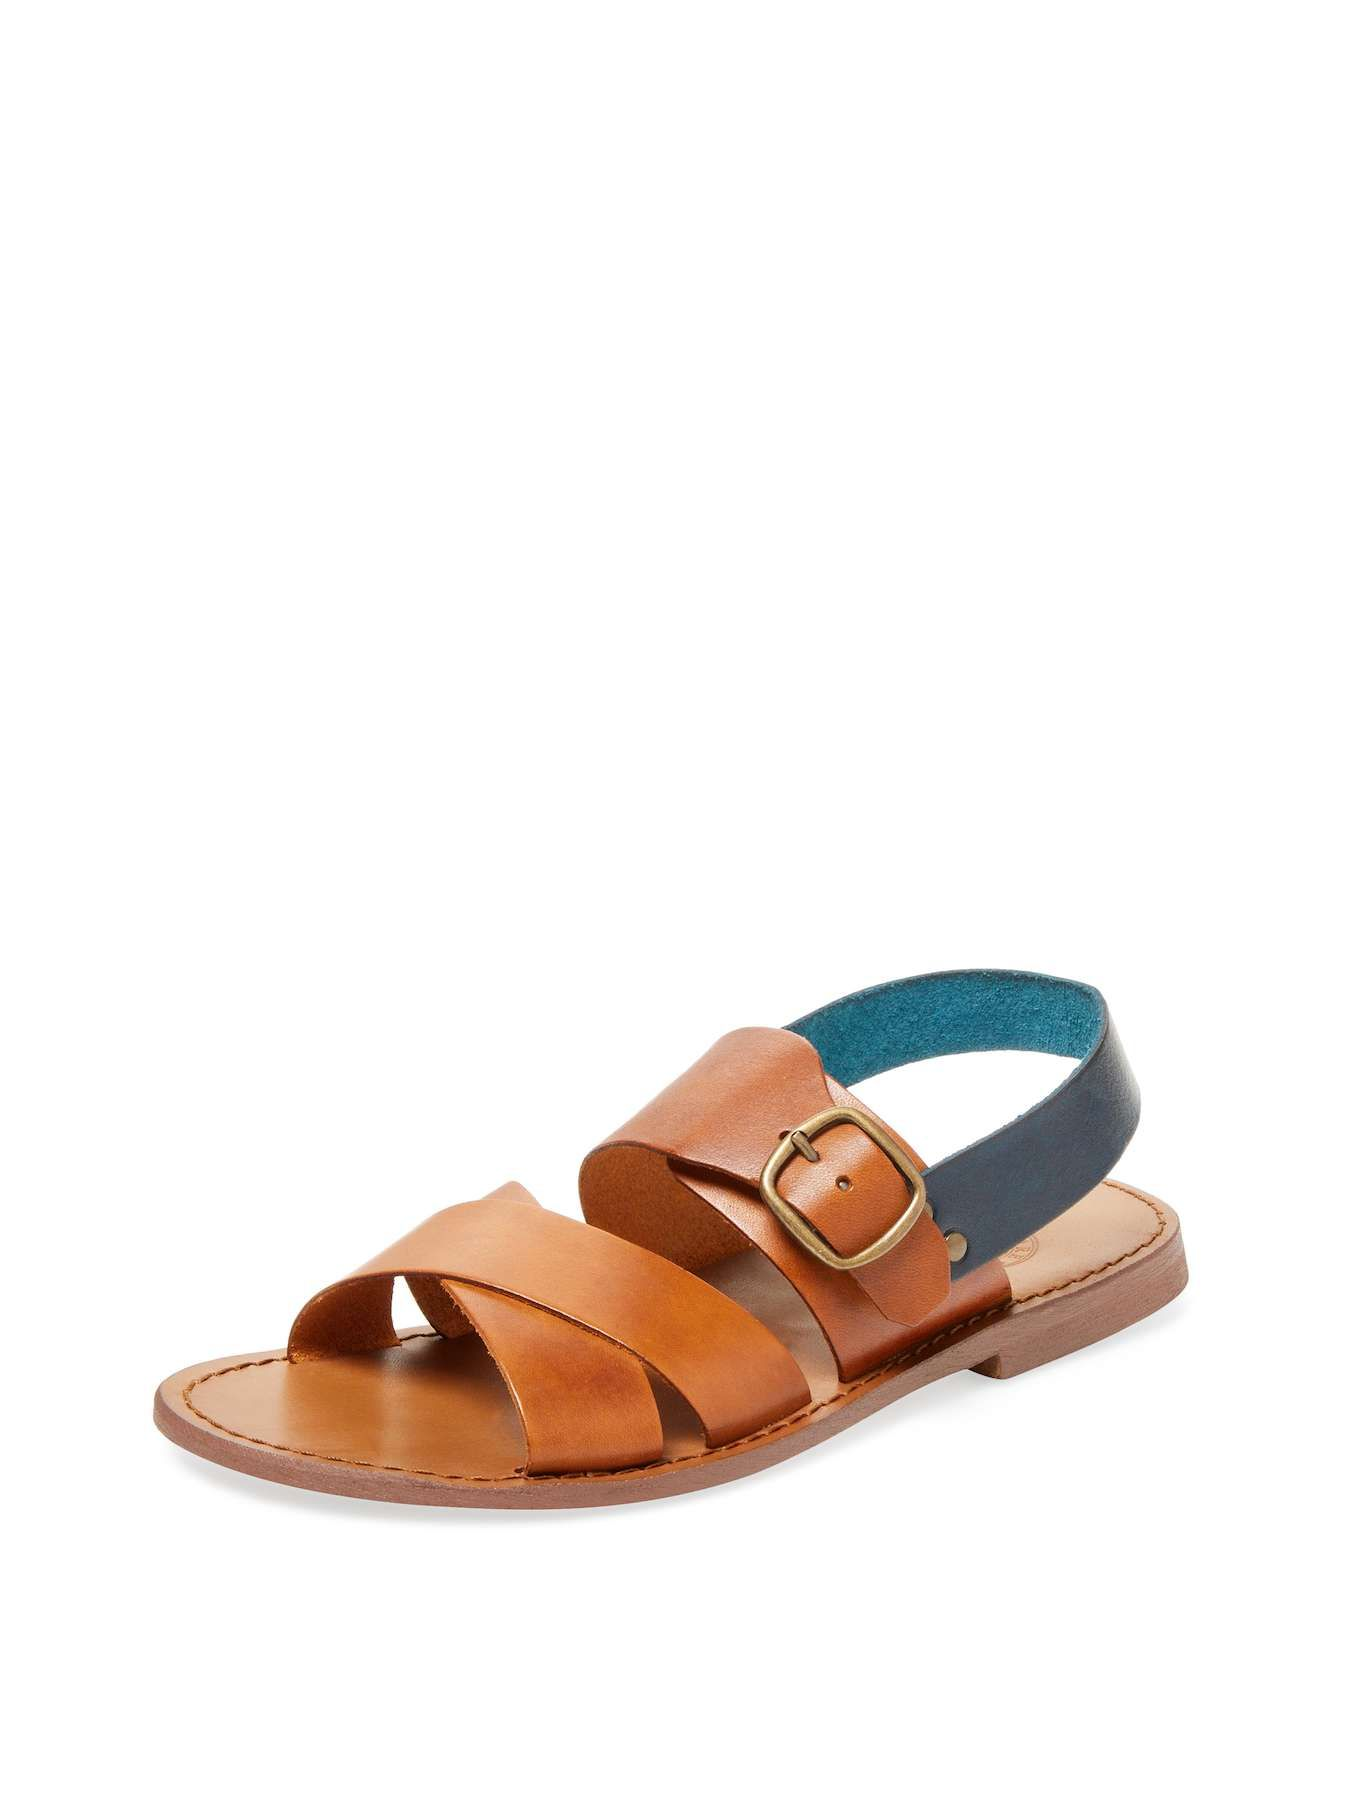 460fb96ee Miramare Italia Counter Strap Slide Sandal Toe ring sandal Leather  Criss-cross straps at front